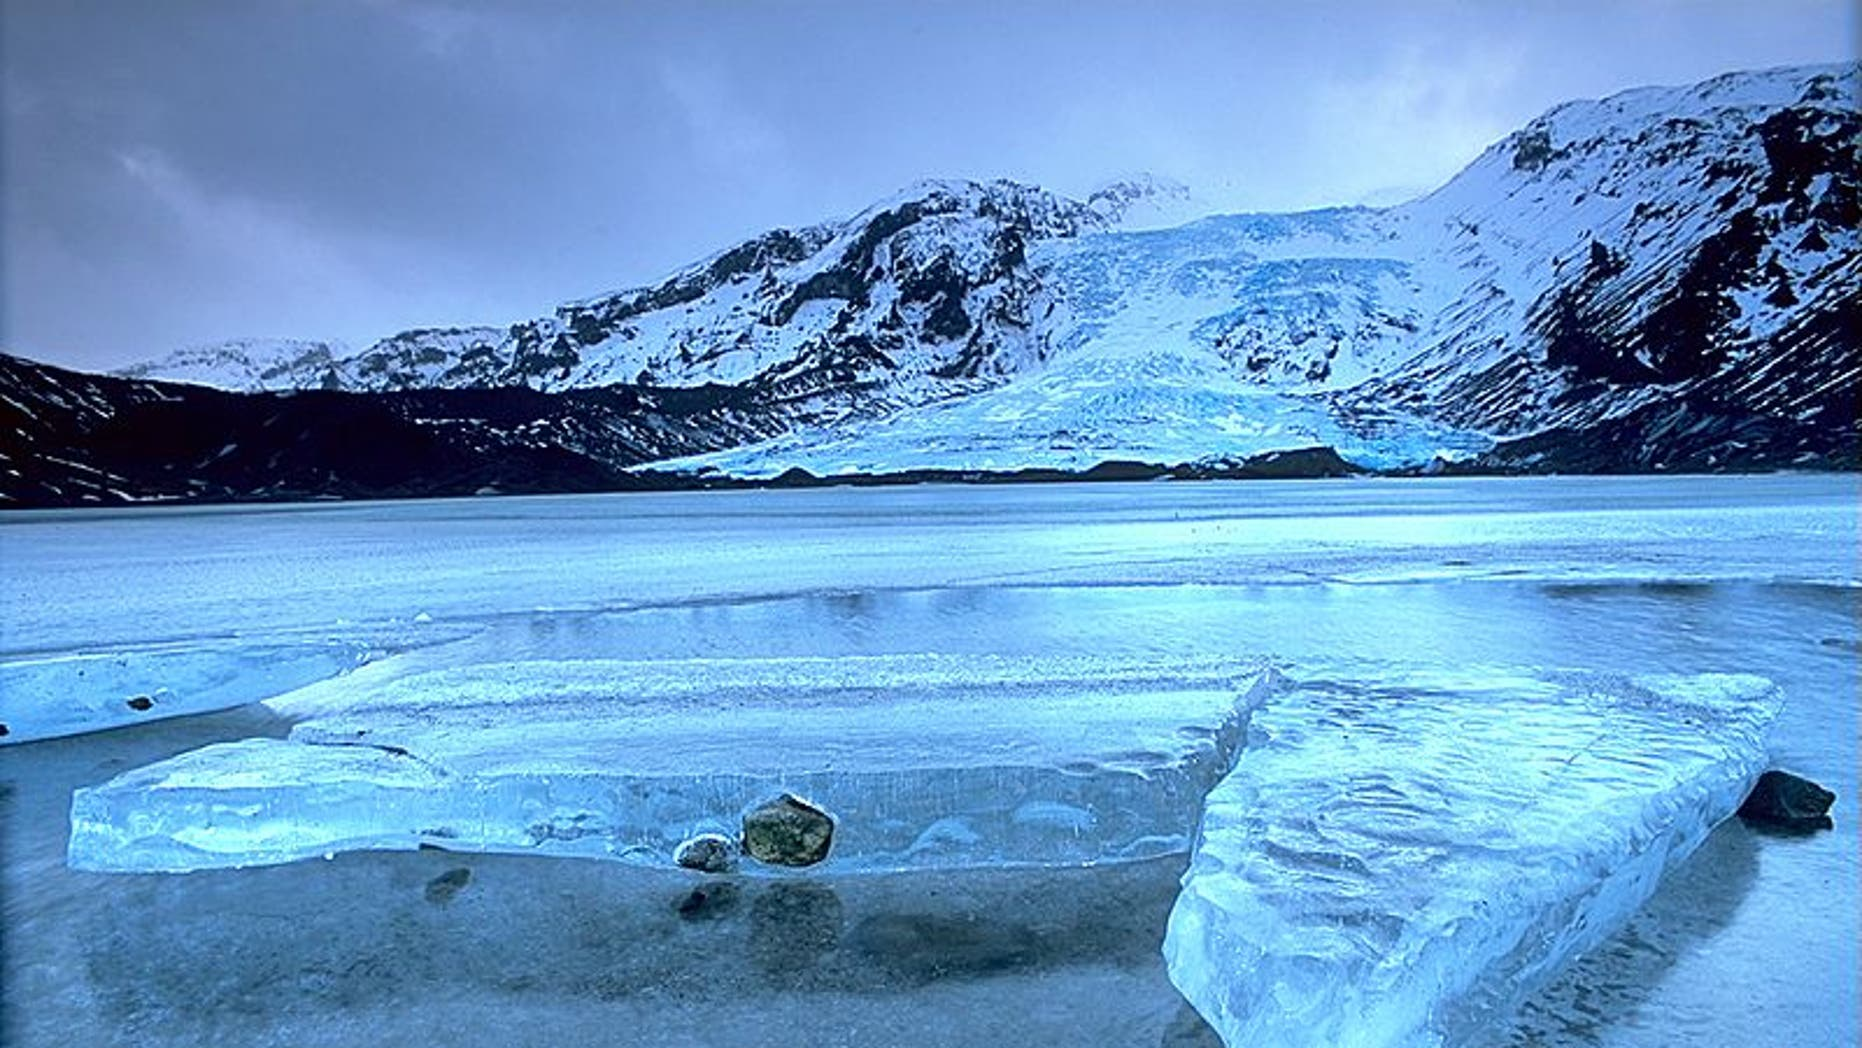 Eyjafjallajokull glacier in Iceland, prior to a volcanic eruption that has forced hundreds of people to leave the area.